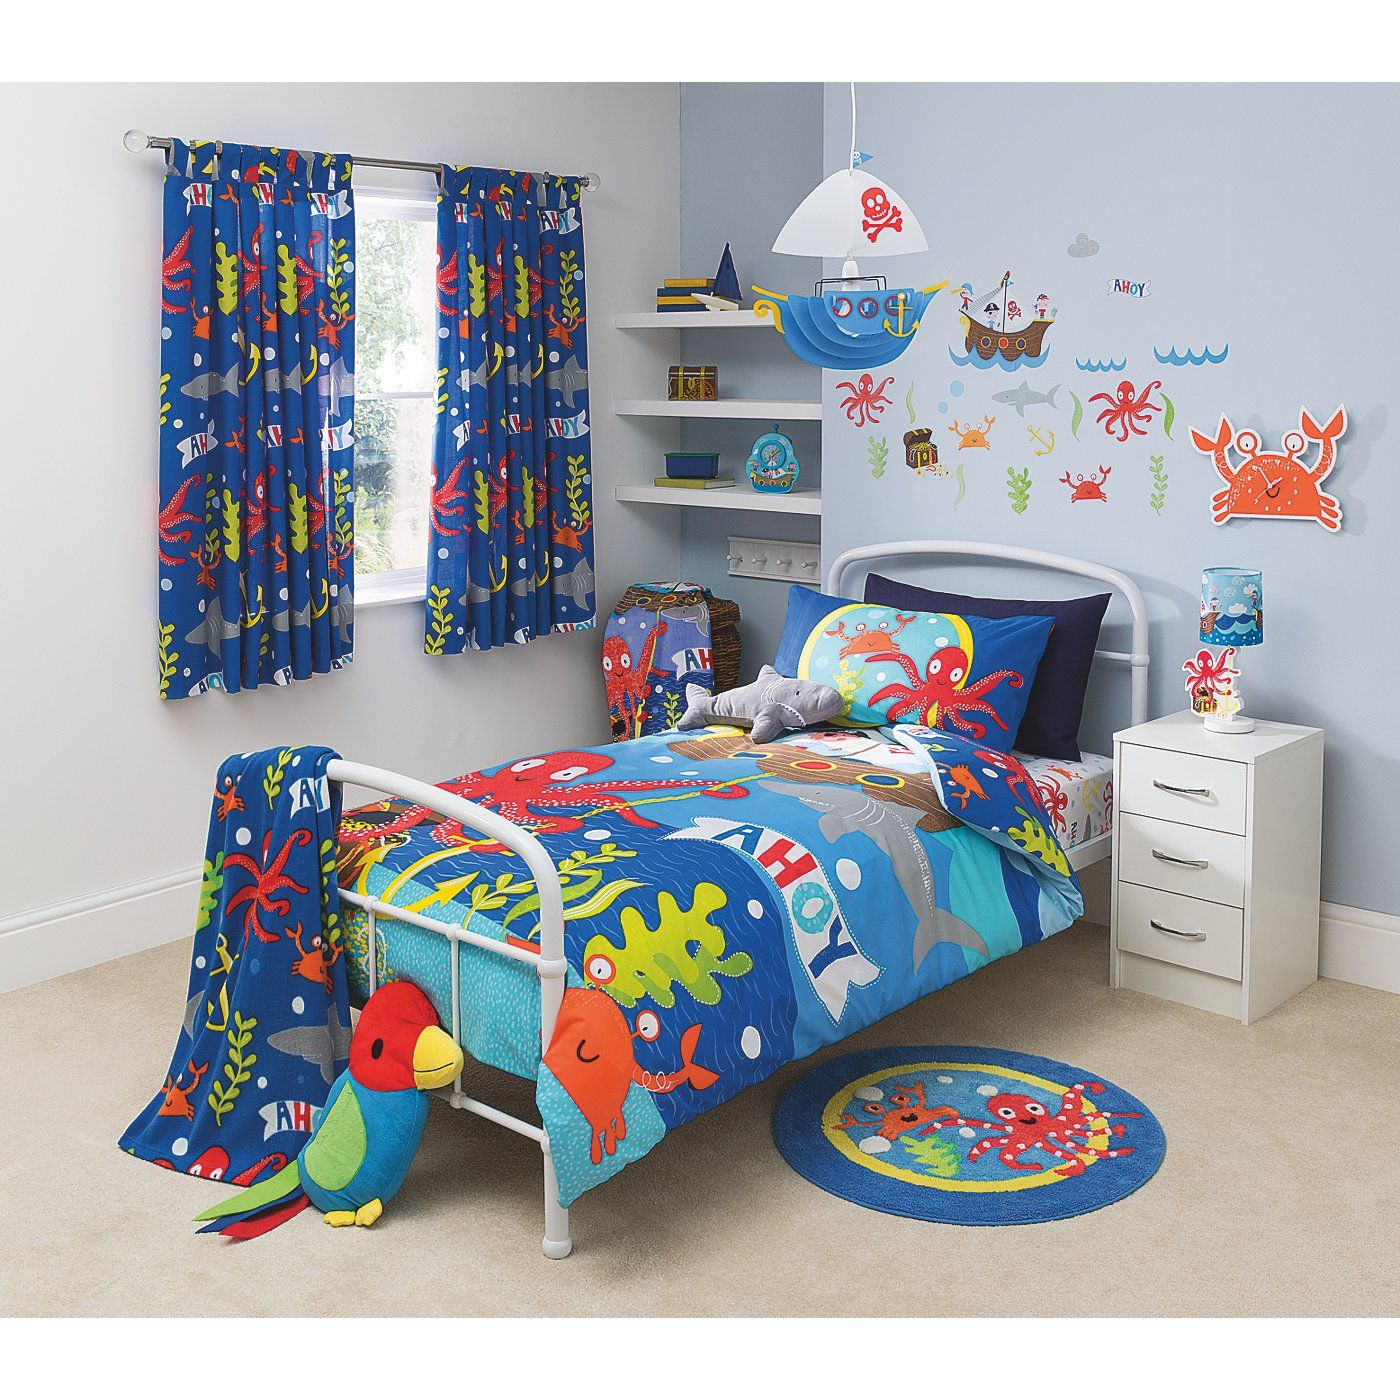 Buy George Home Pirate Bedroom Set from our Bedding range today